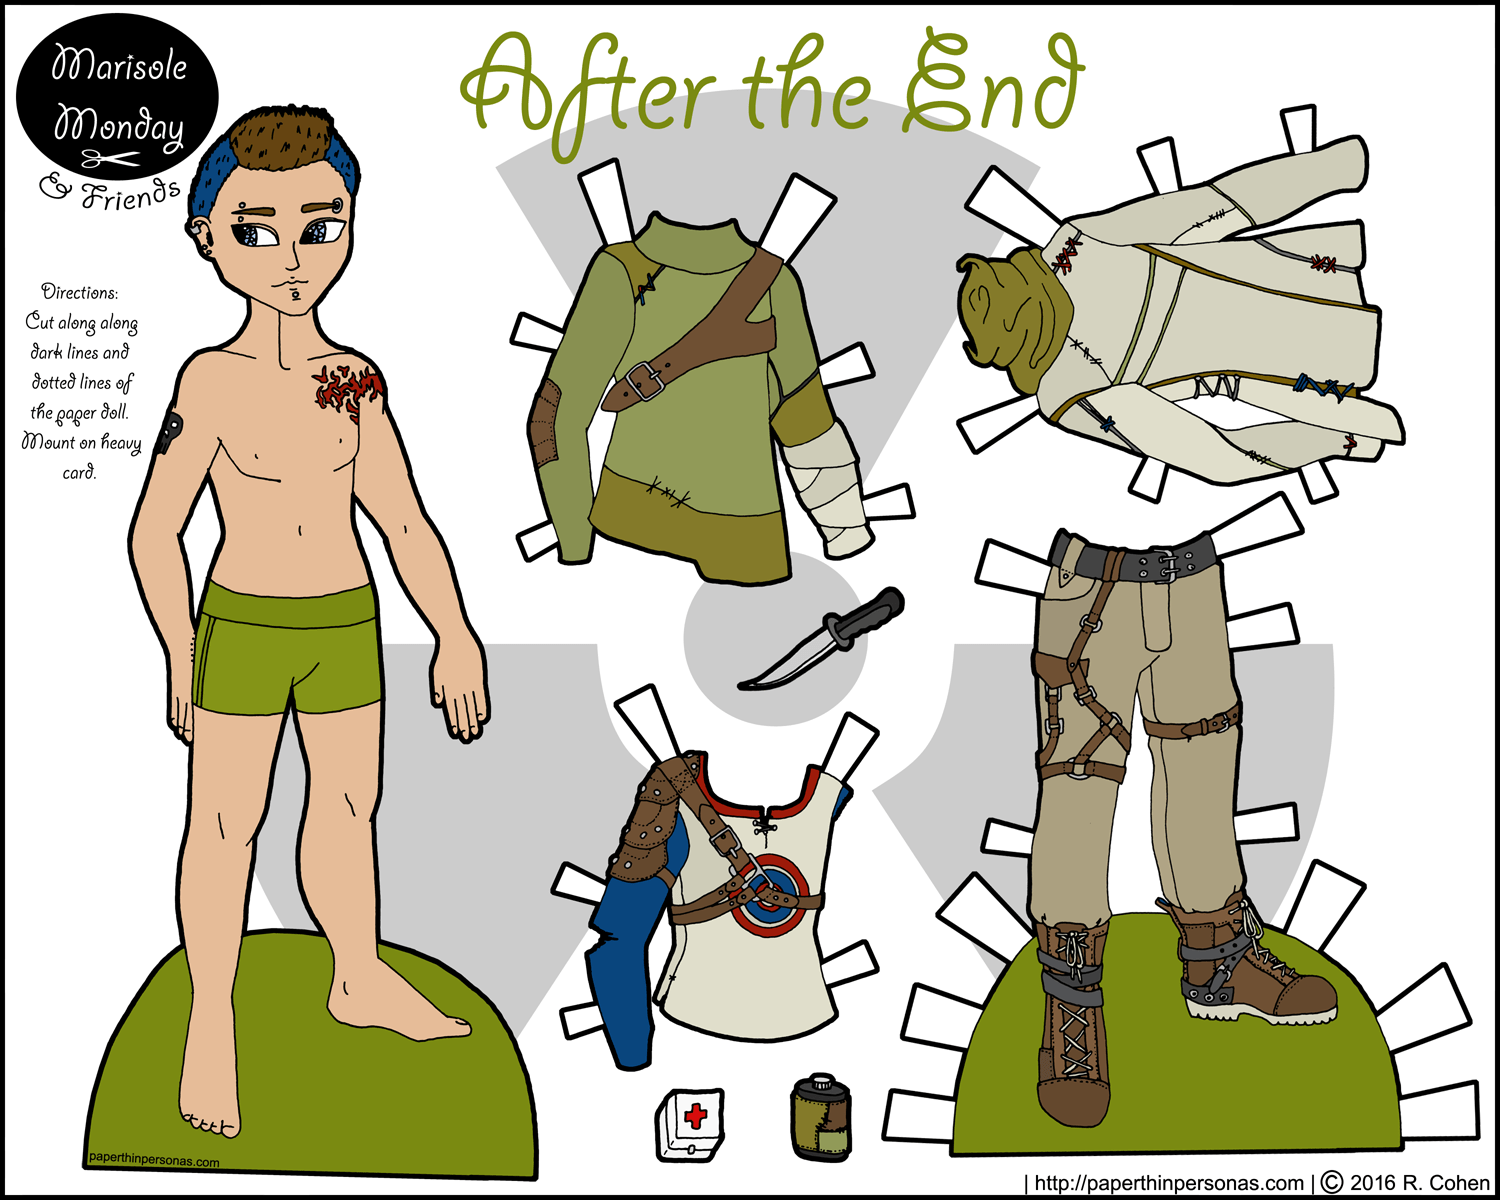 Mikhail at the After the End: A Male Paper Doll